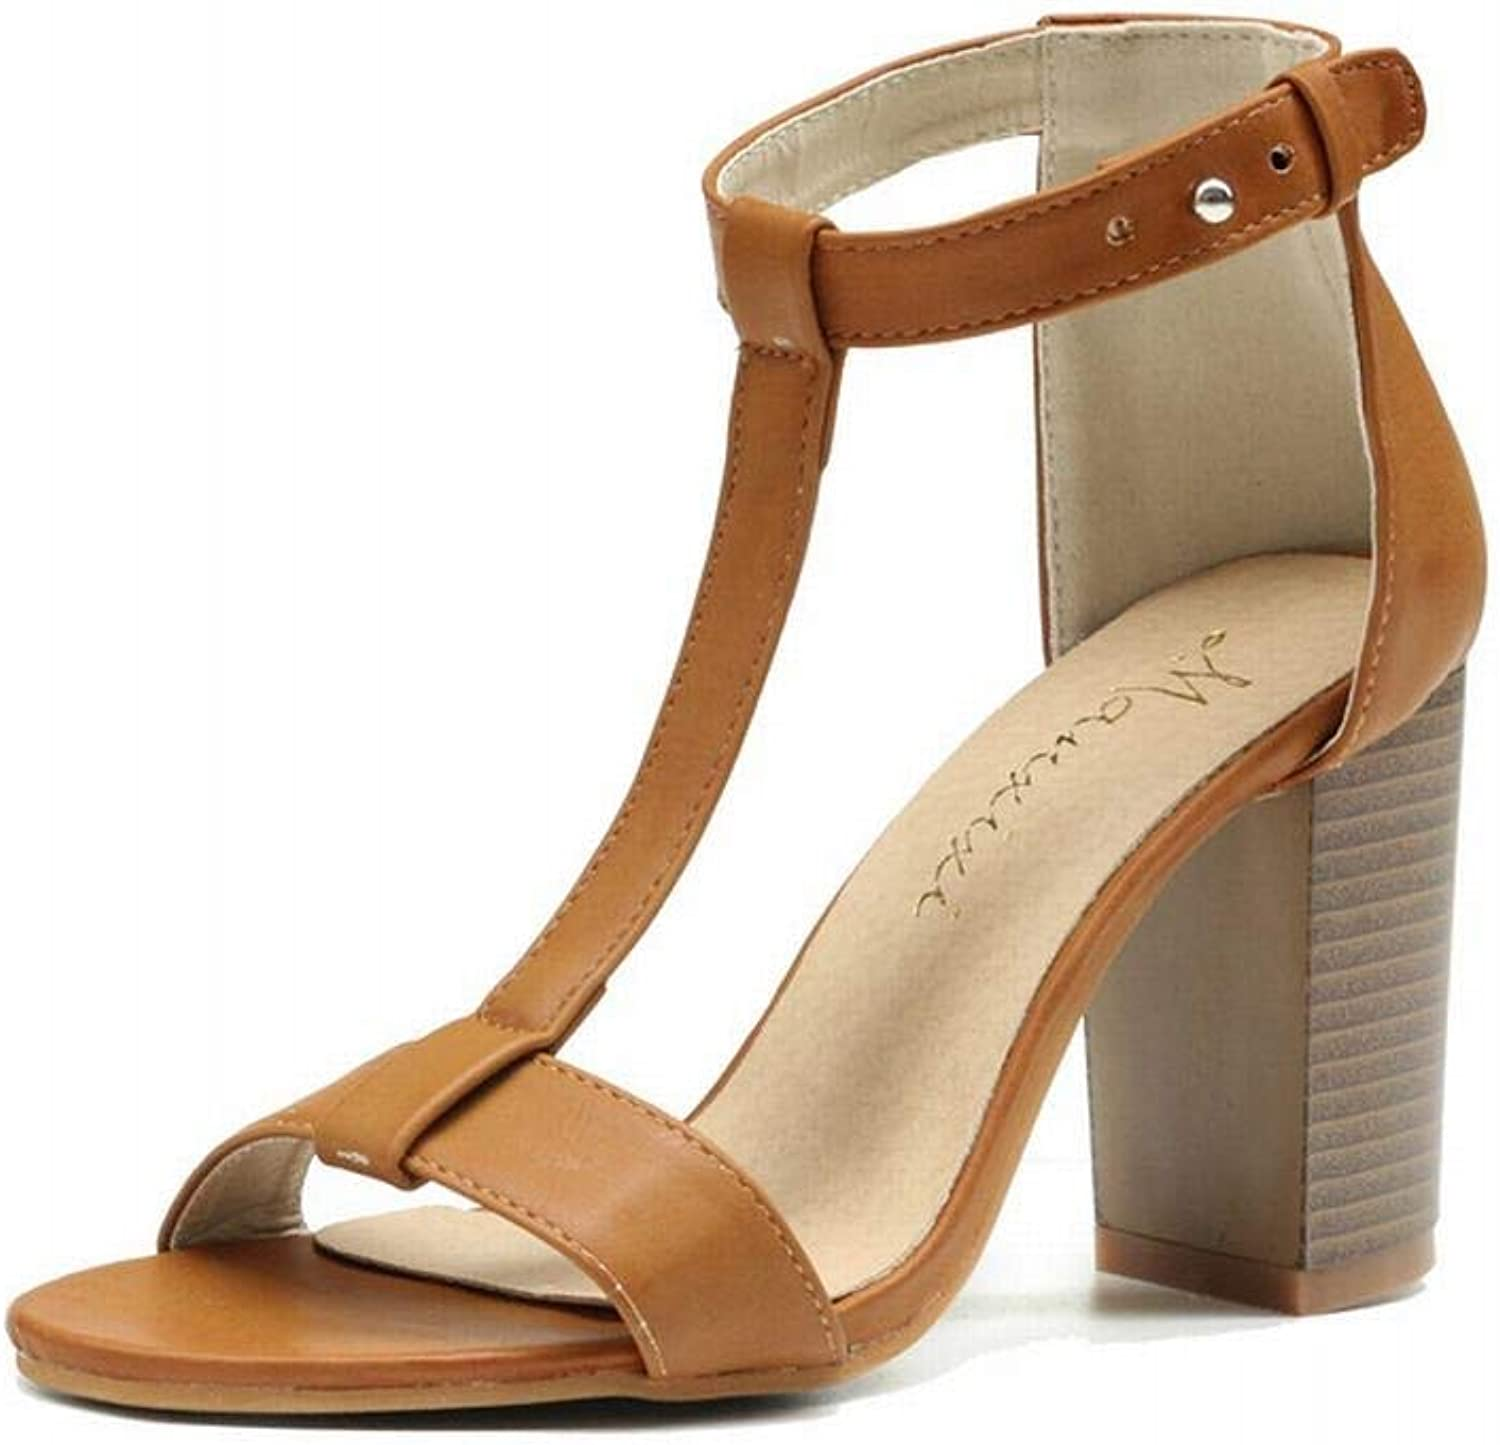 Kirabon Women's High-Heeled Sandals Wood Grain Thick with Sandals Fashion Wild High-Heeled shoes (color   Brown, Size   39)